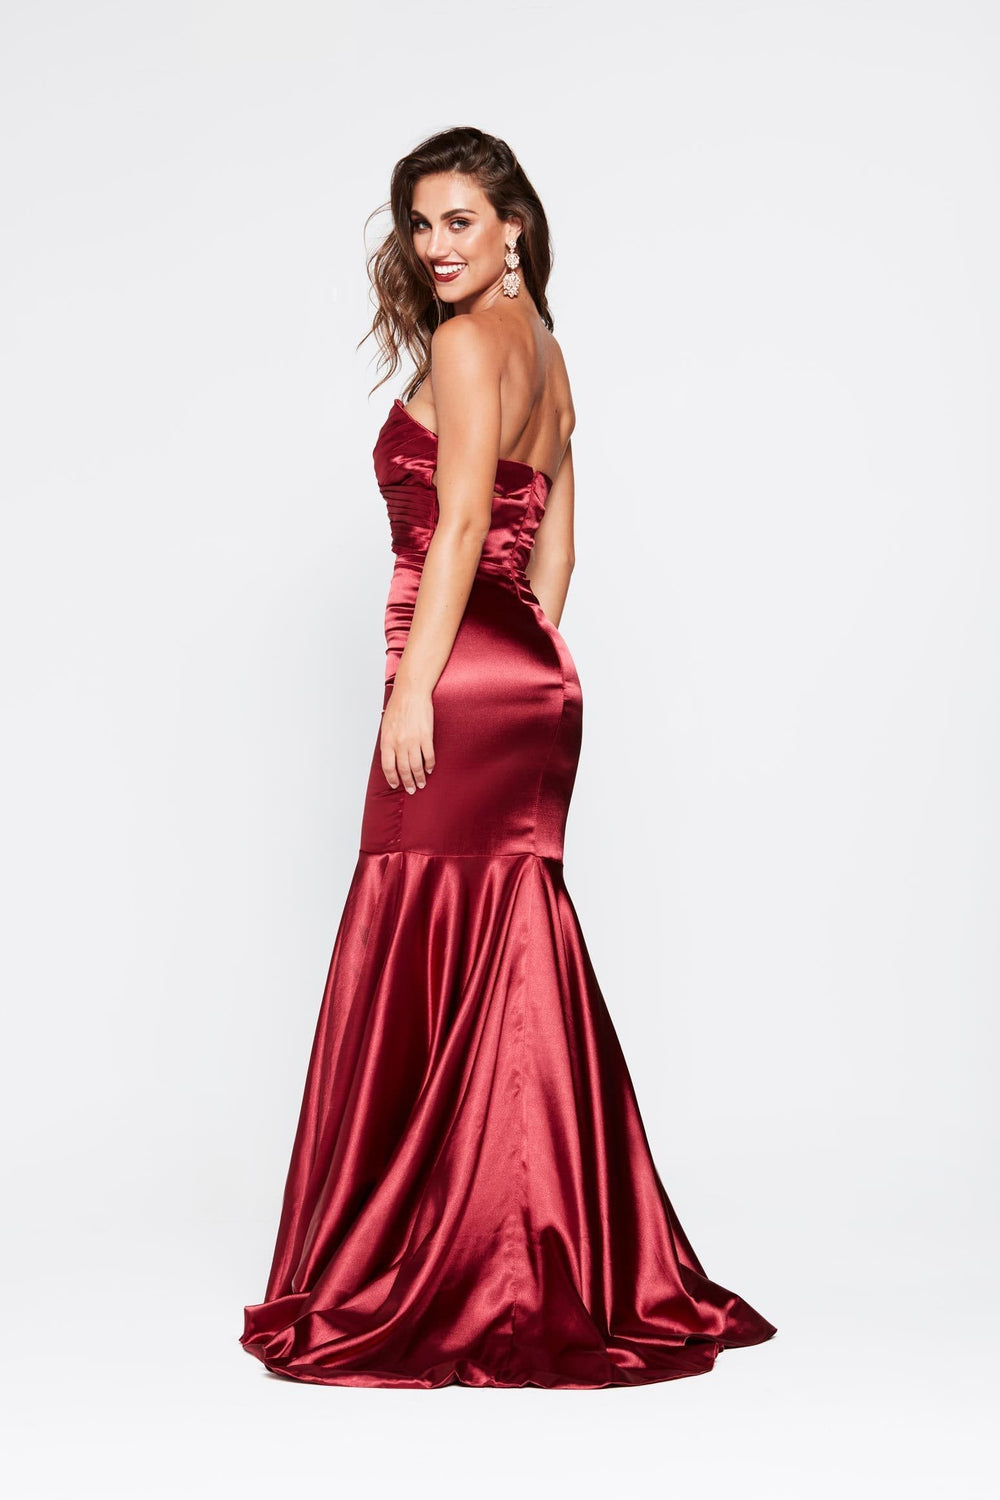 b656ef6a57 ... A N Akira - Deep Red Satin Dress with Pleated Bodice and Mermaid Train